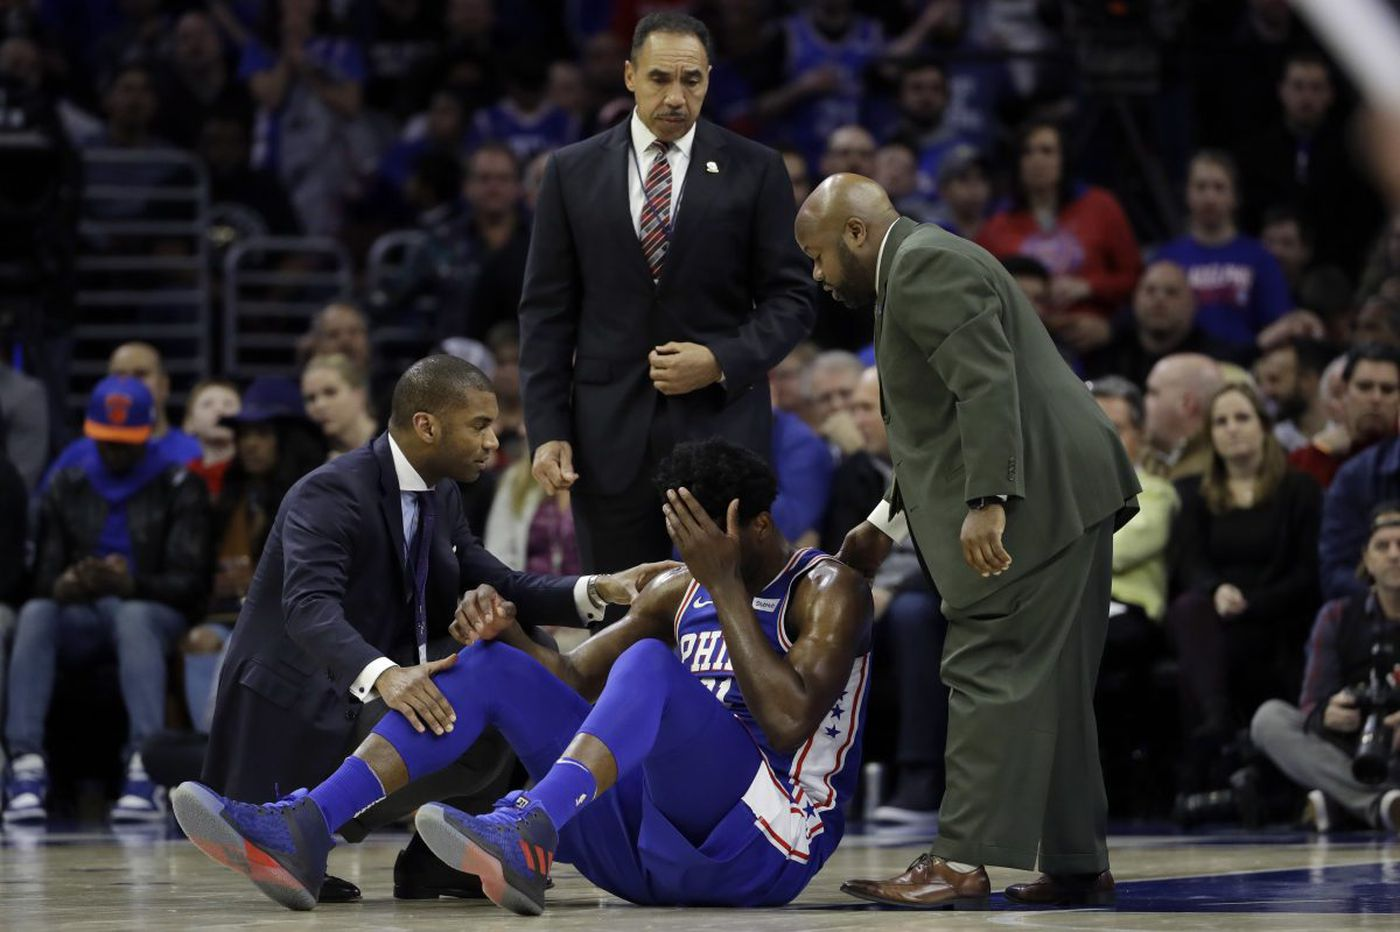 Joel Embiid's eye injury is not the first in his playing career